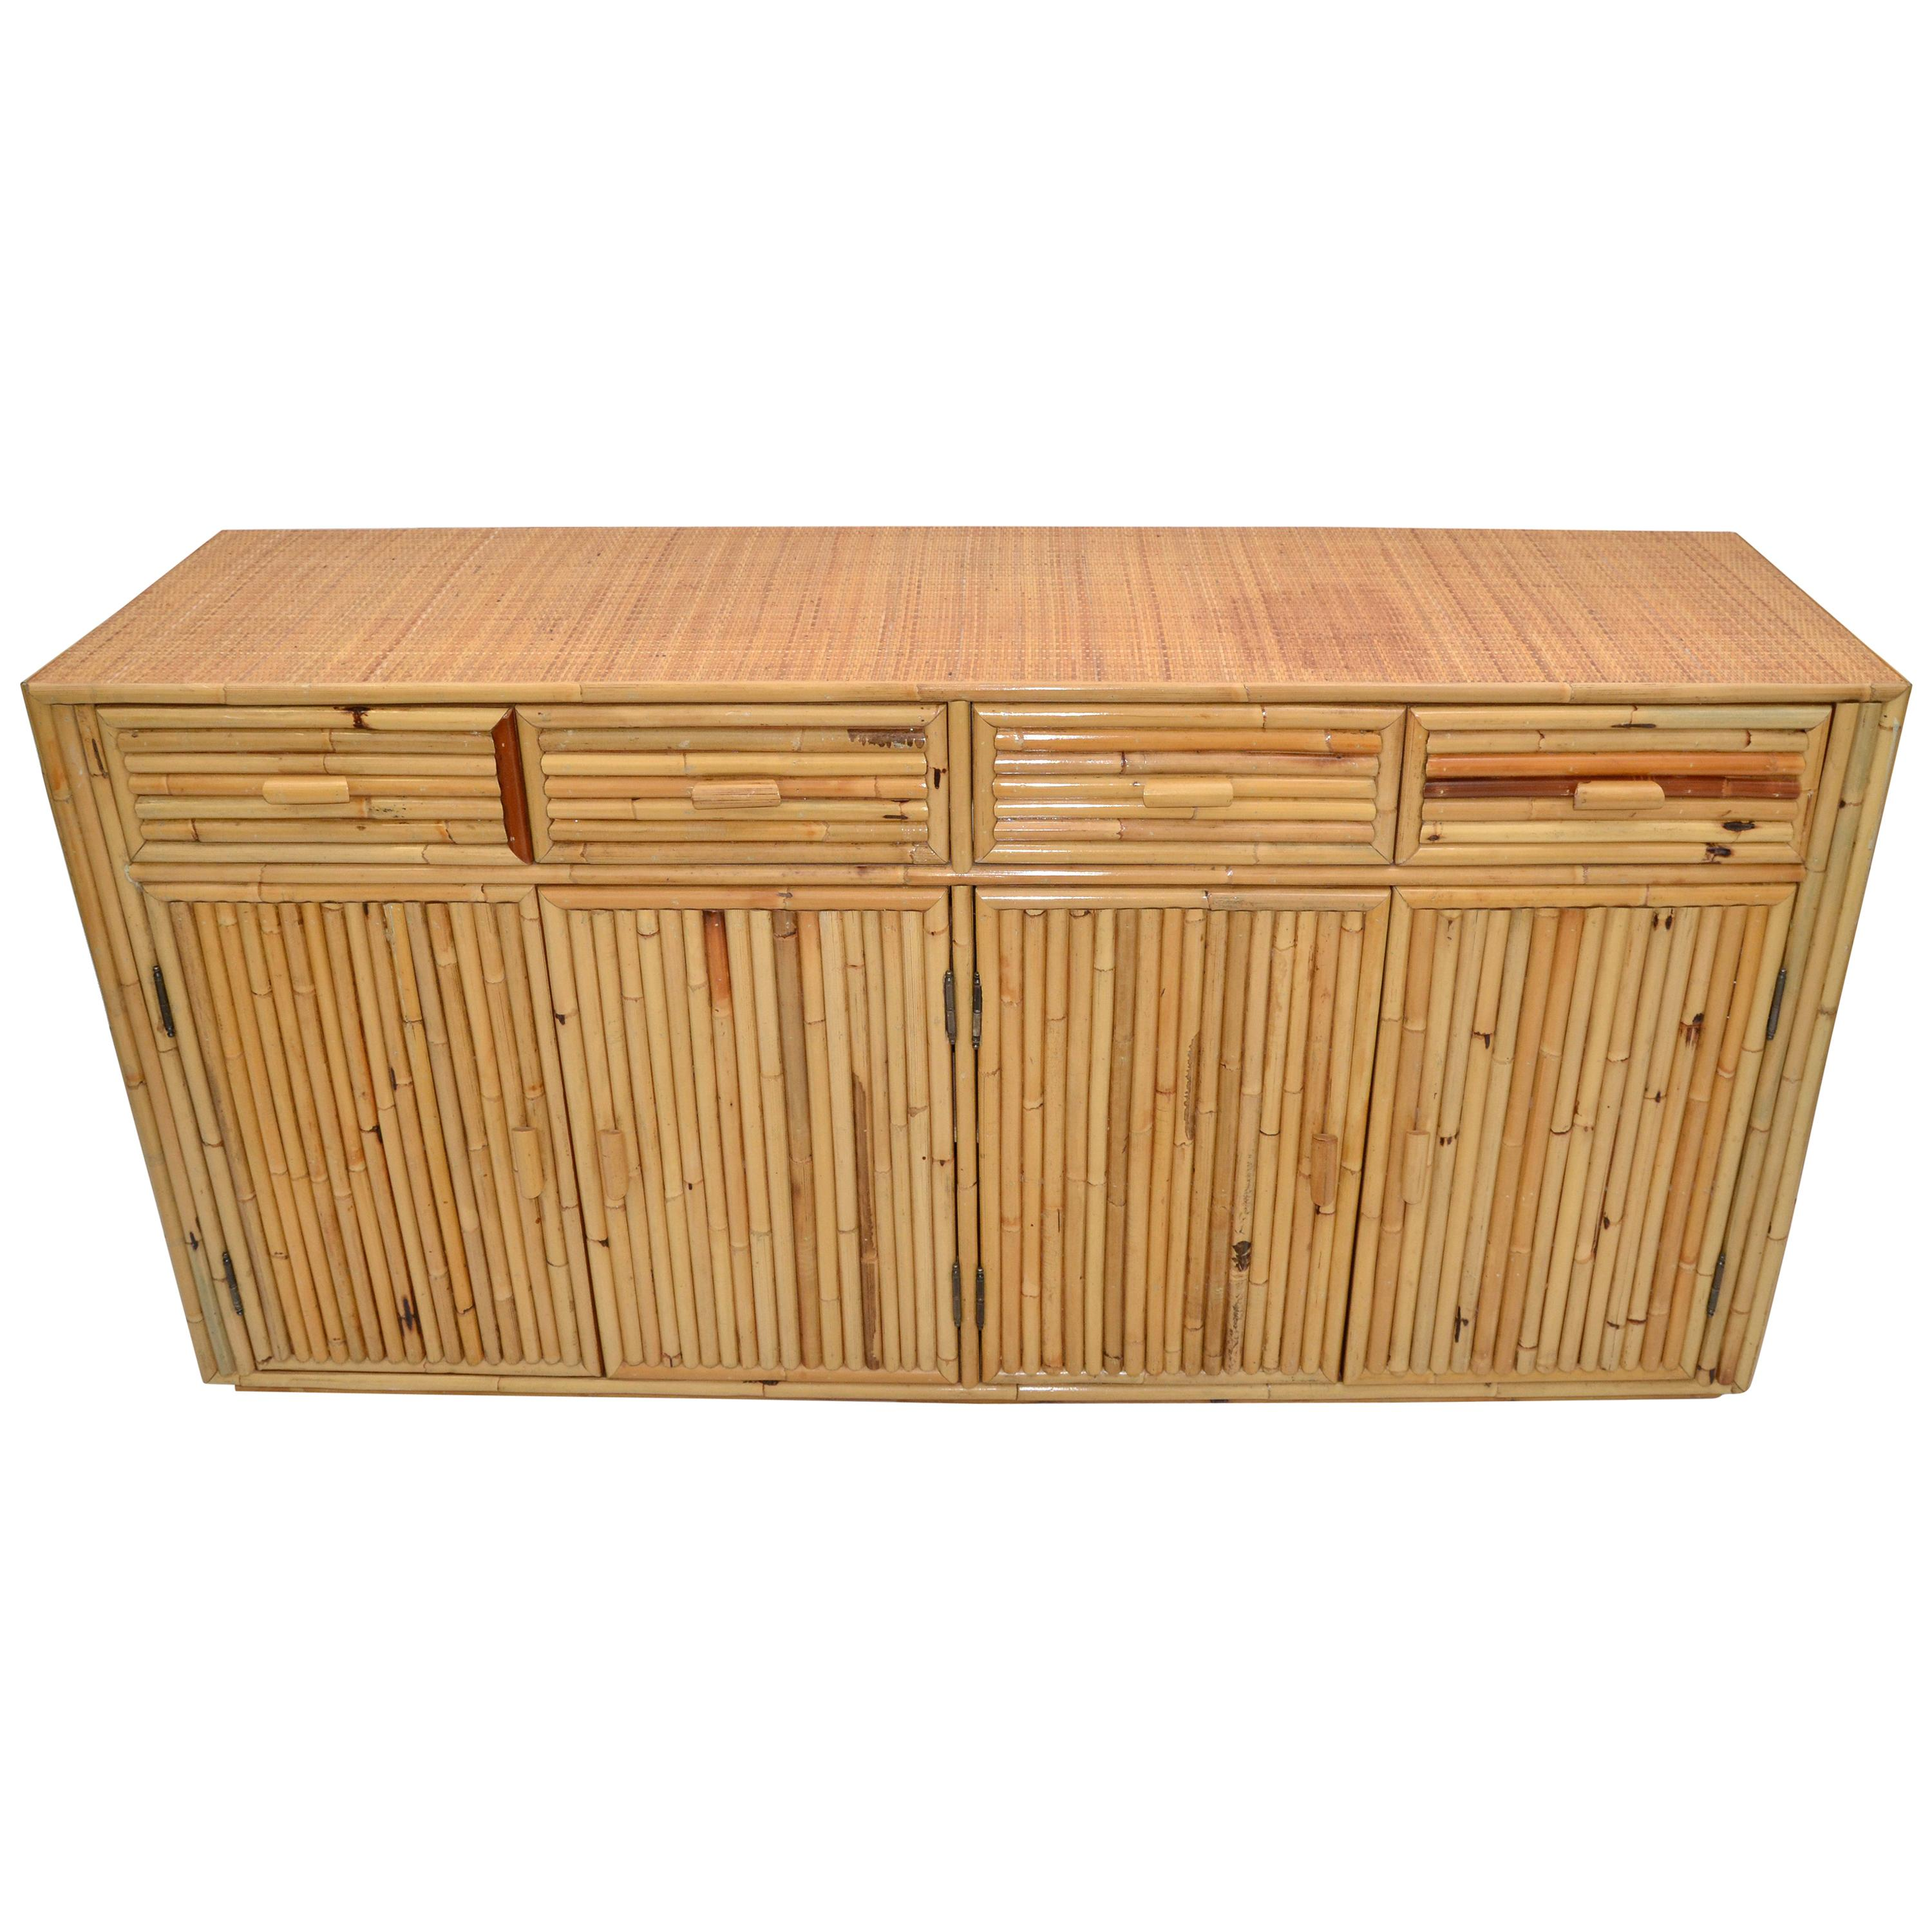 Chinoiserie Asian Modern Bamboo and Handwoven Cane Top Dresser, Credenza, 1970s